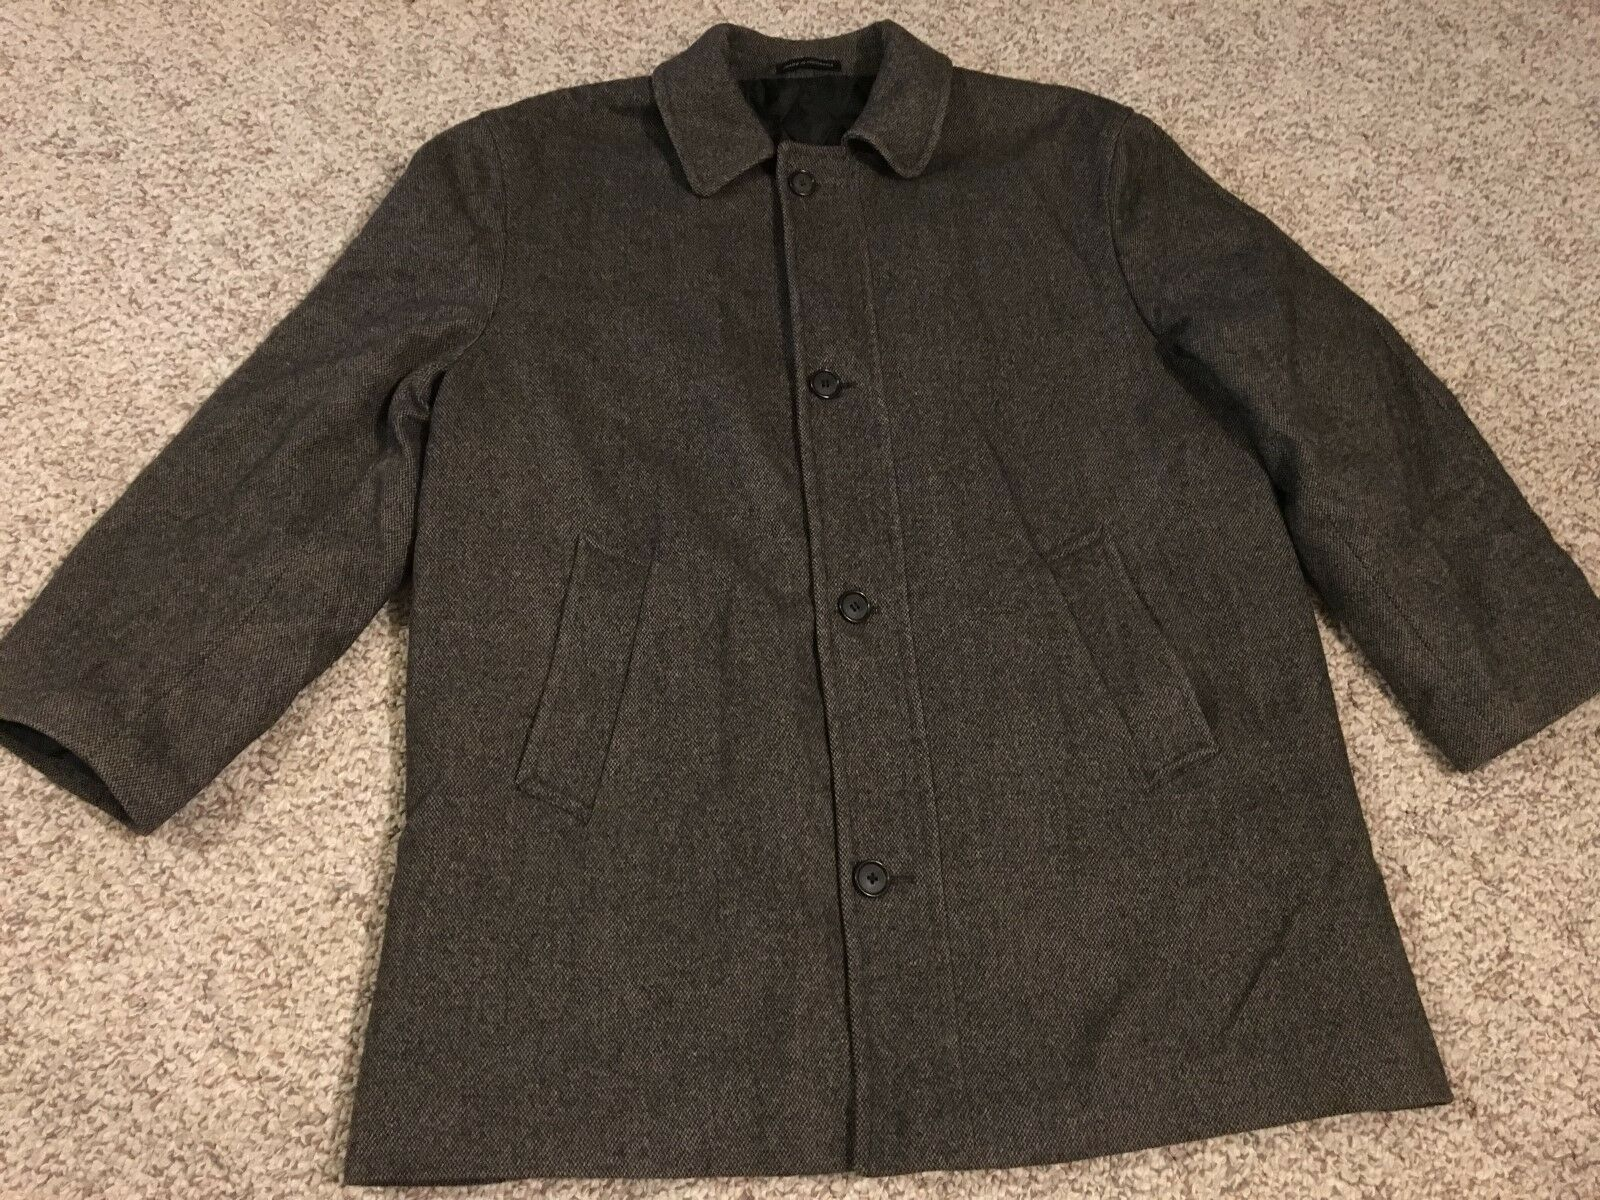 Lauren Ralph Lauren Men's Size 42 Short Button Up Cashmere Blend Coat - Brown